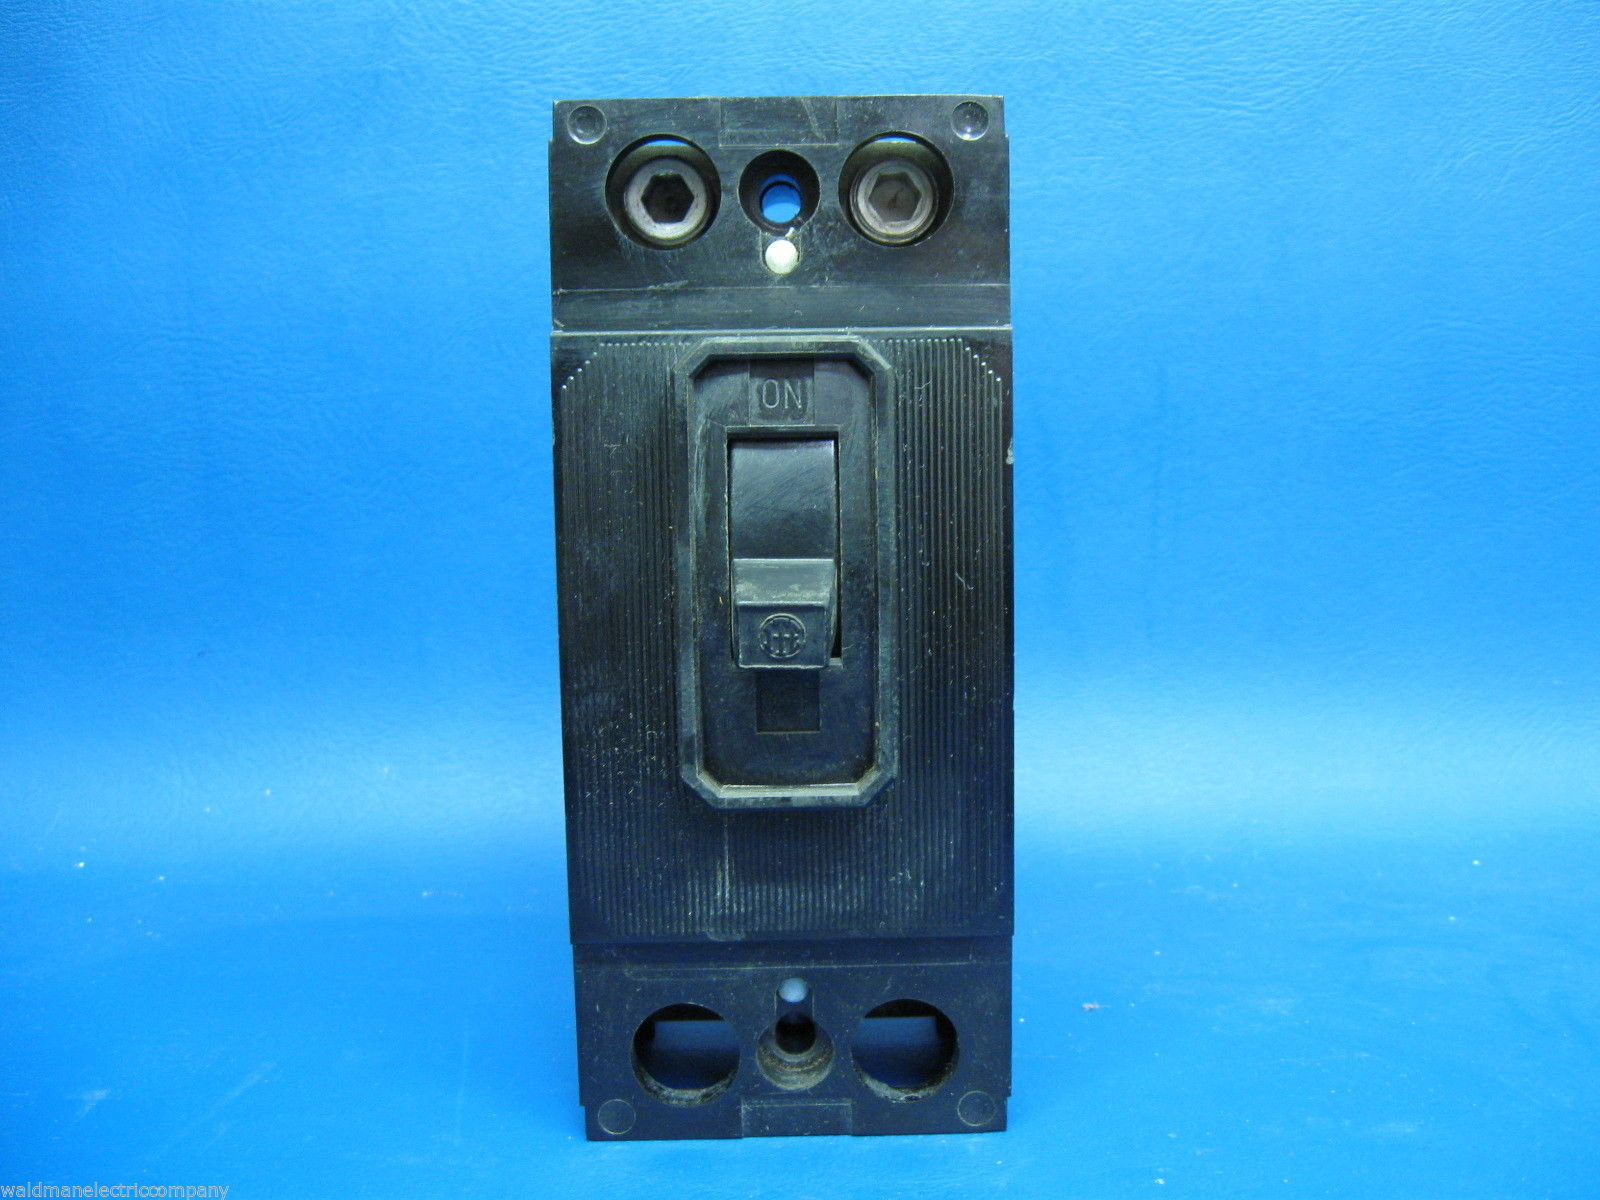 Pushmatic 200 Amp Fuse Box Wiring Library Shop Eaton Type Br 30amp 2pole Circuit Breaker At Lowescom Ite 2 Pole 240v Qj22b200 Main For Gould Siemens